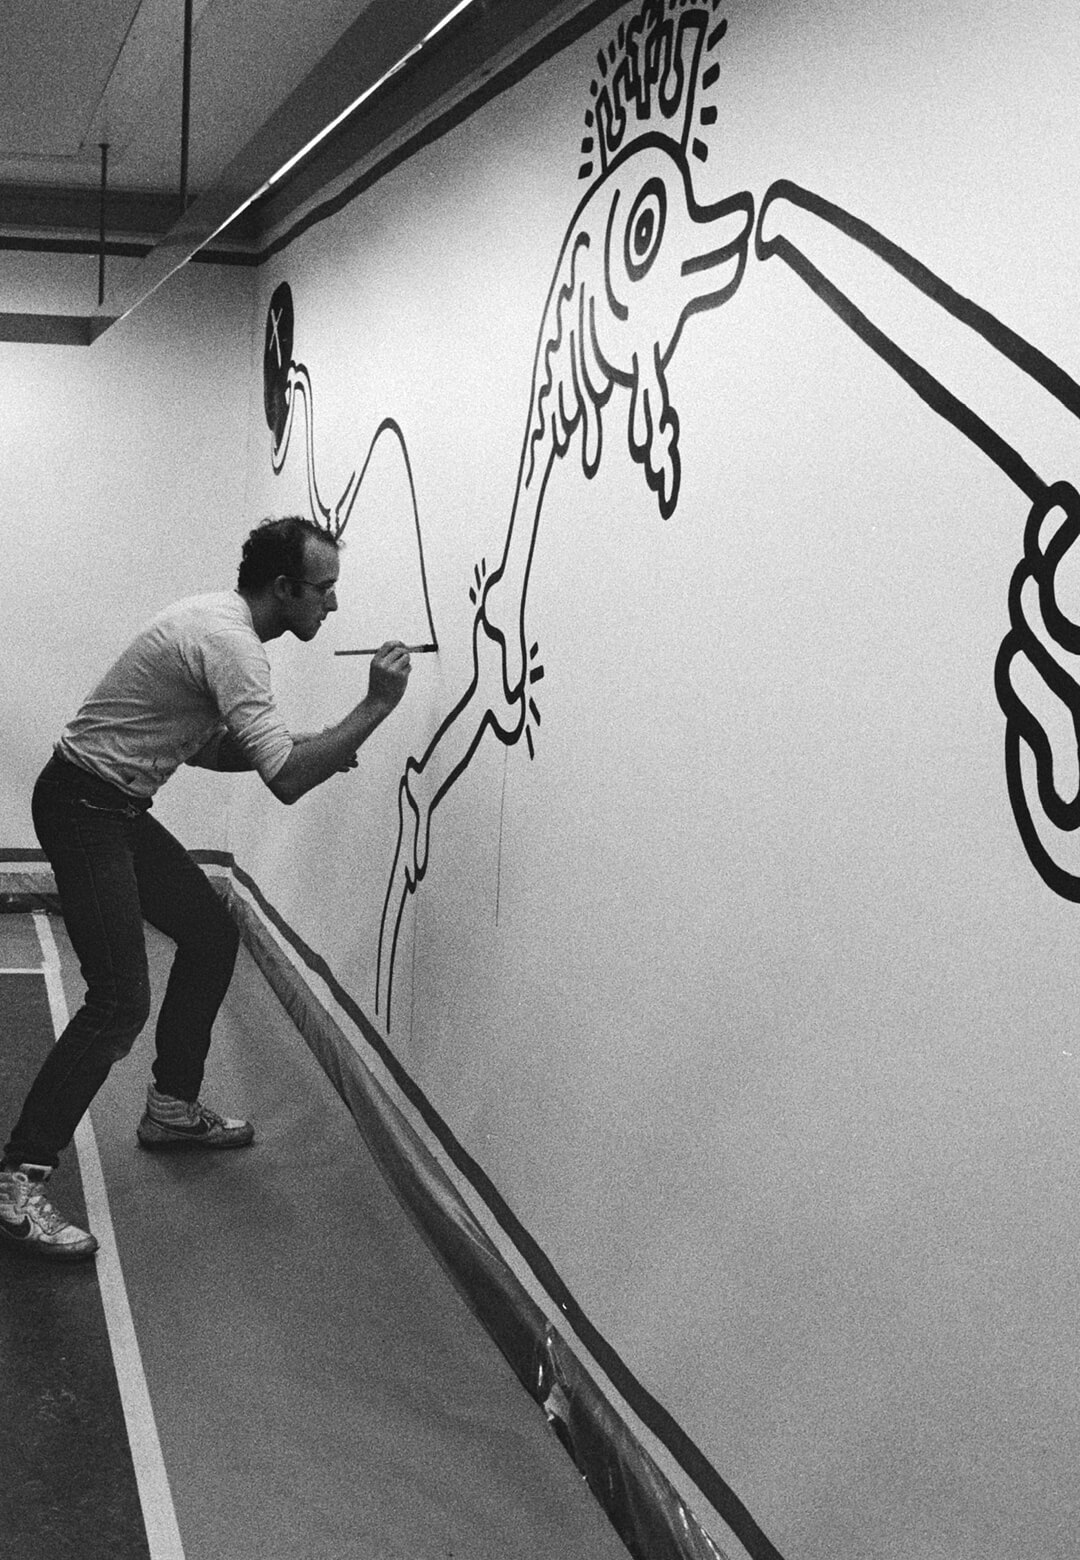 Keith Haring working on an installation in 1986 | Keith Haring | STIRworld